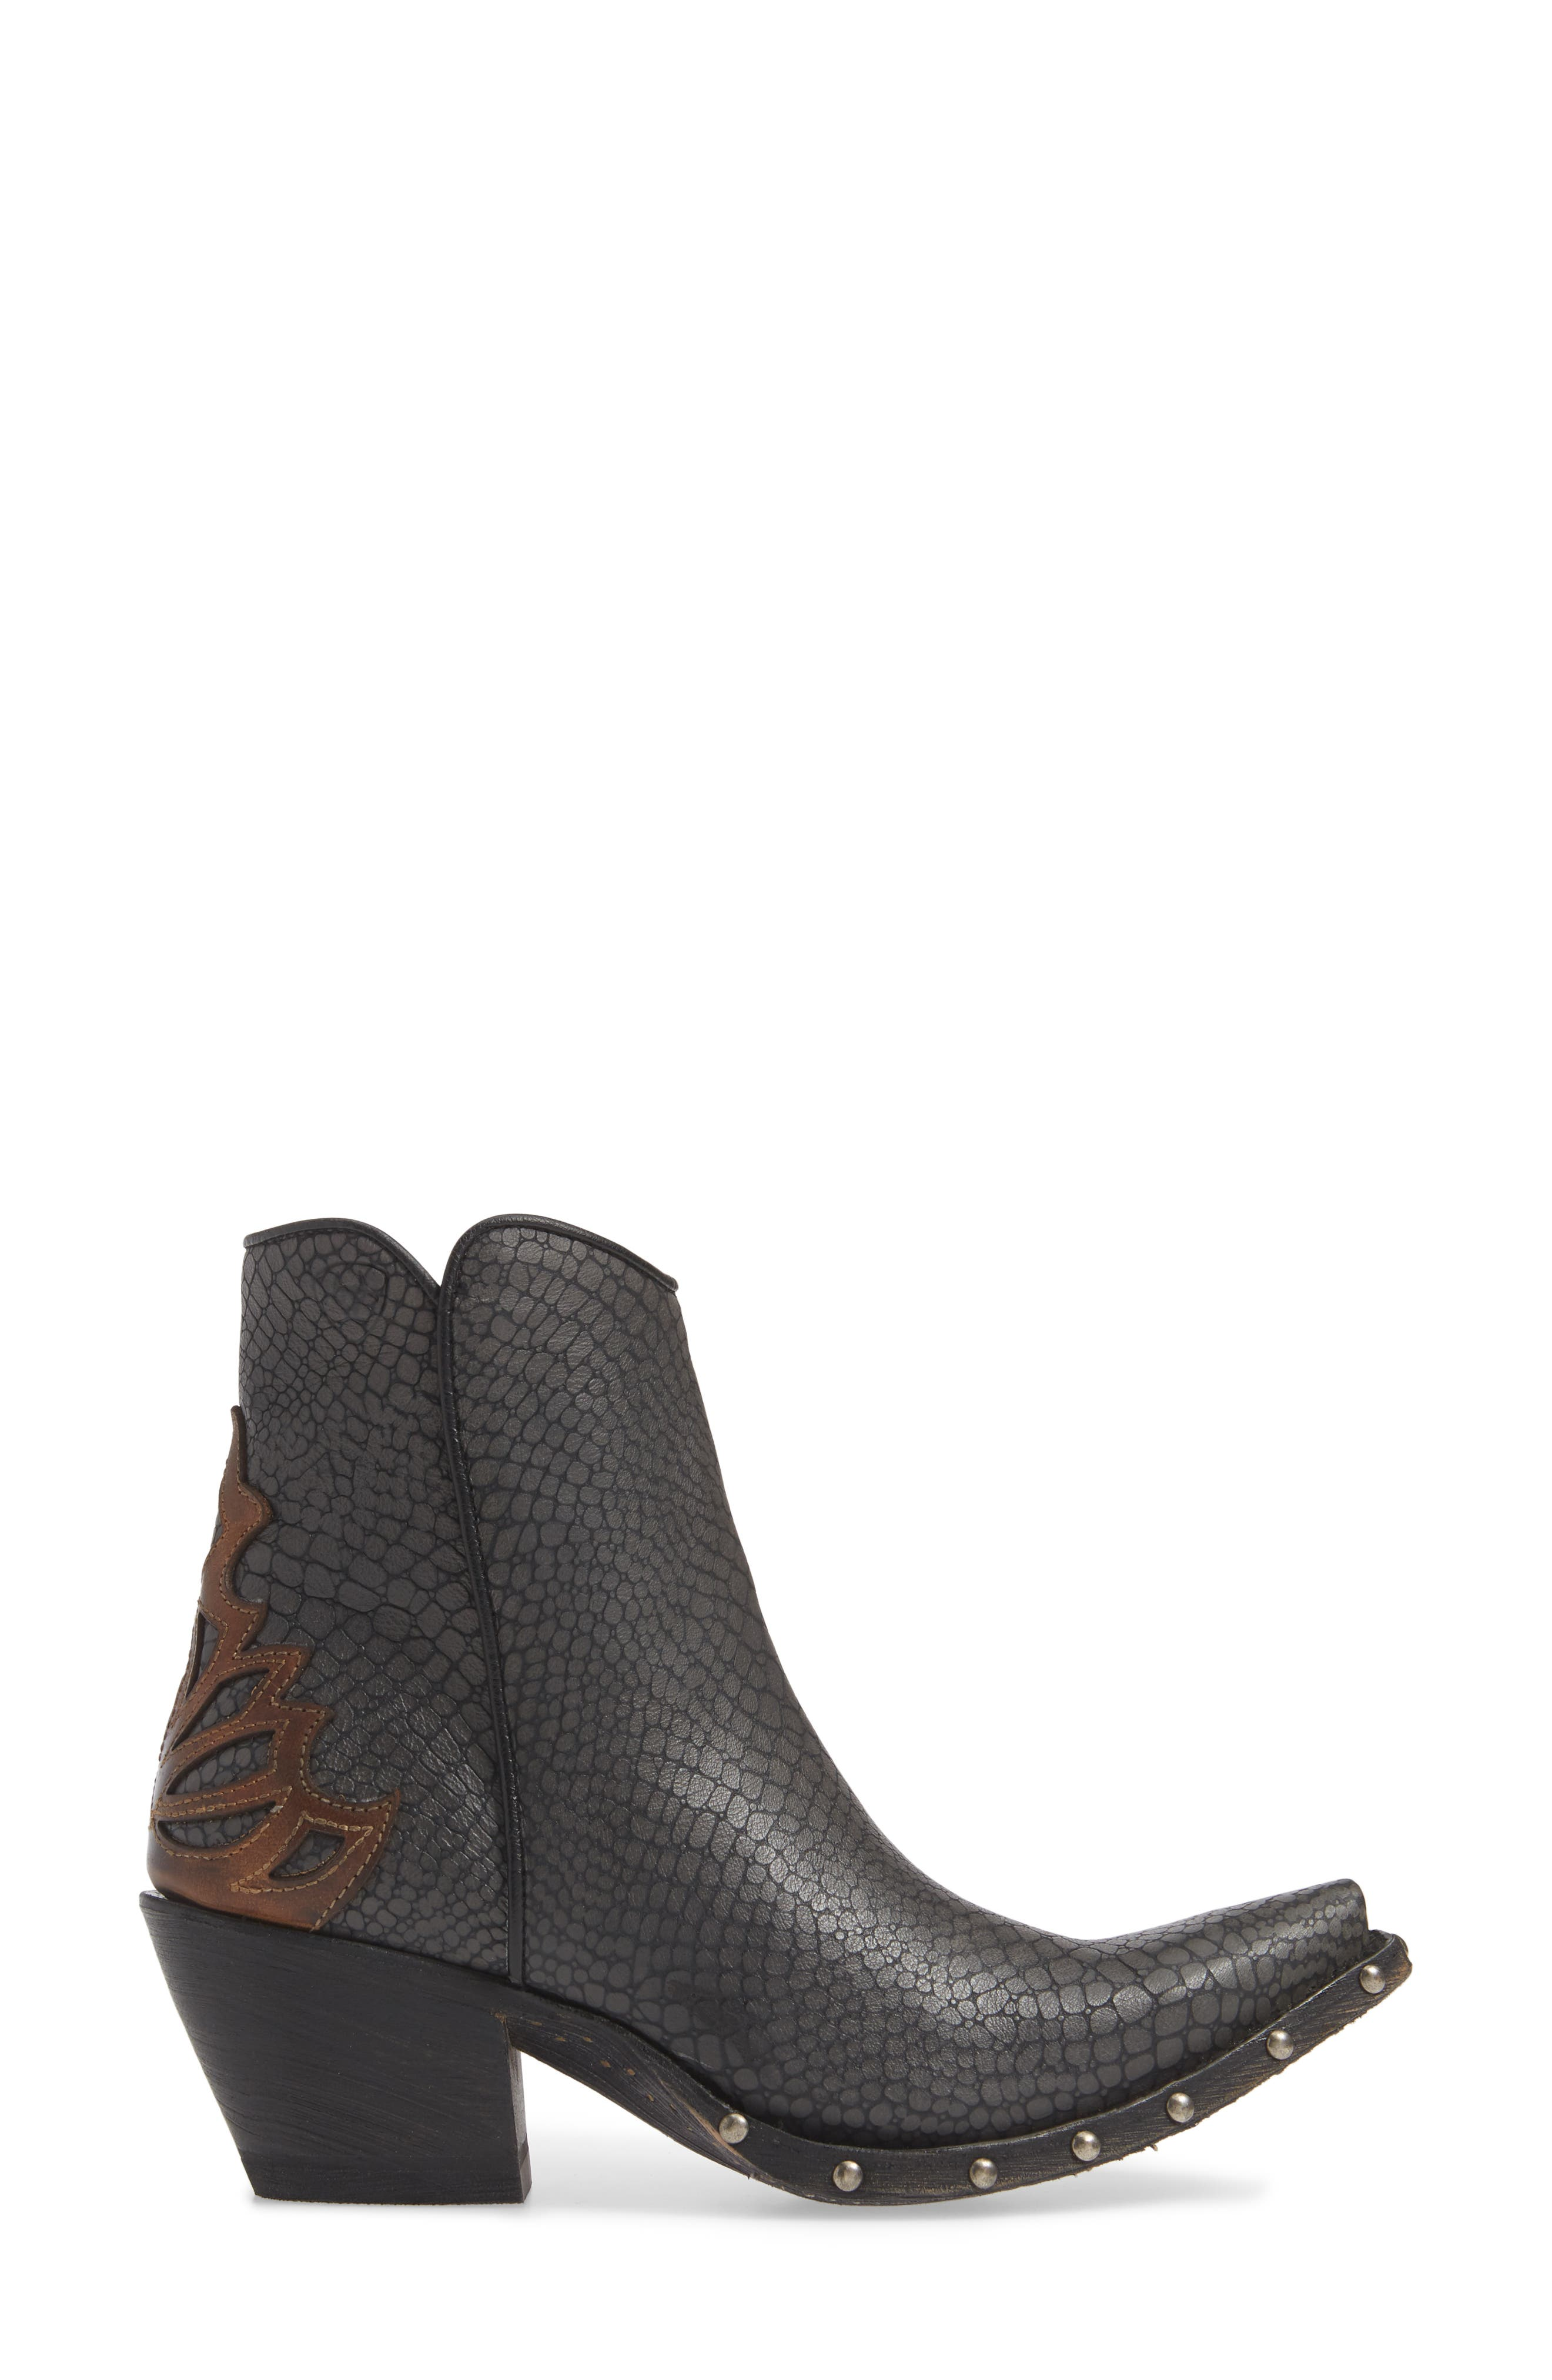 ARIAT, Fenix Western Bootie, Alternate thumbnail 3, color, CHIC GREY CRACKLED TAN LEATHER